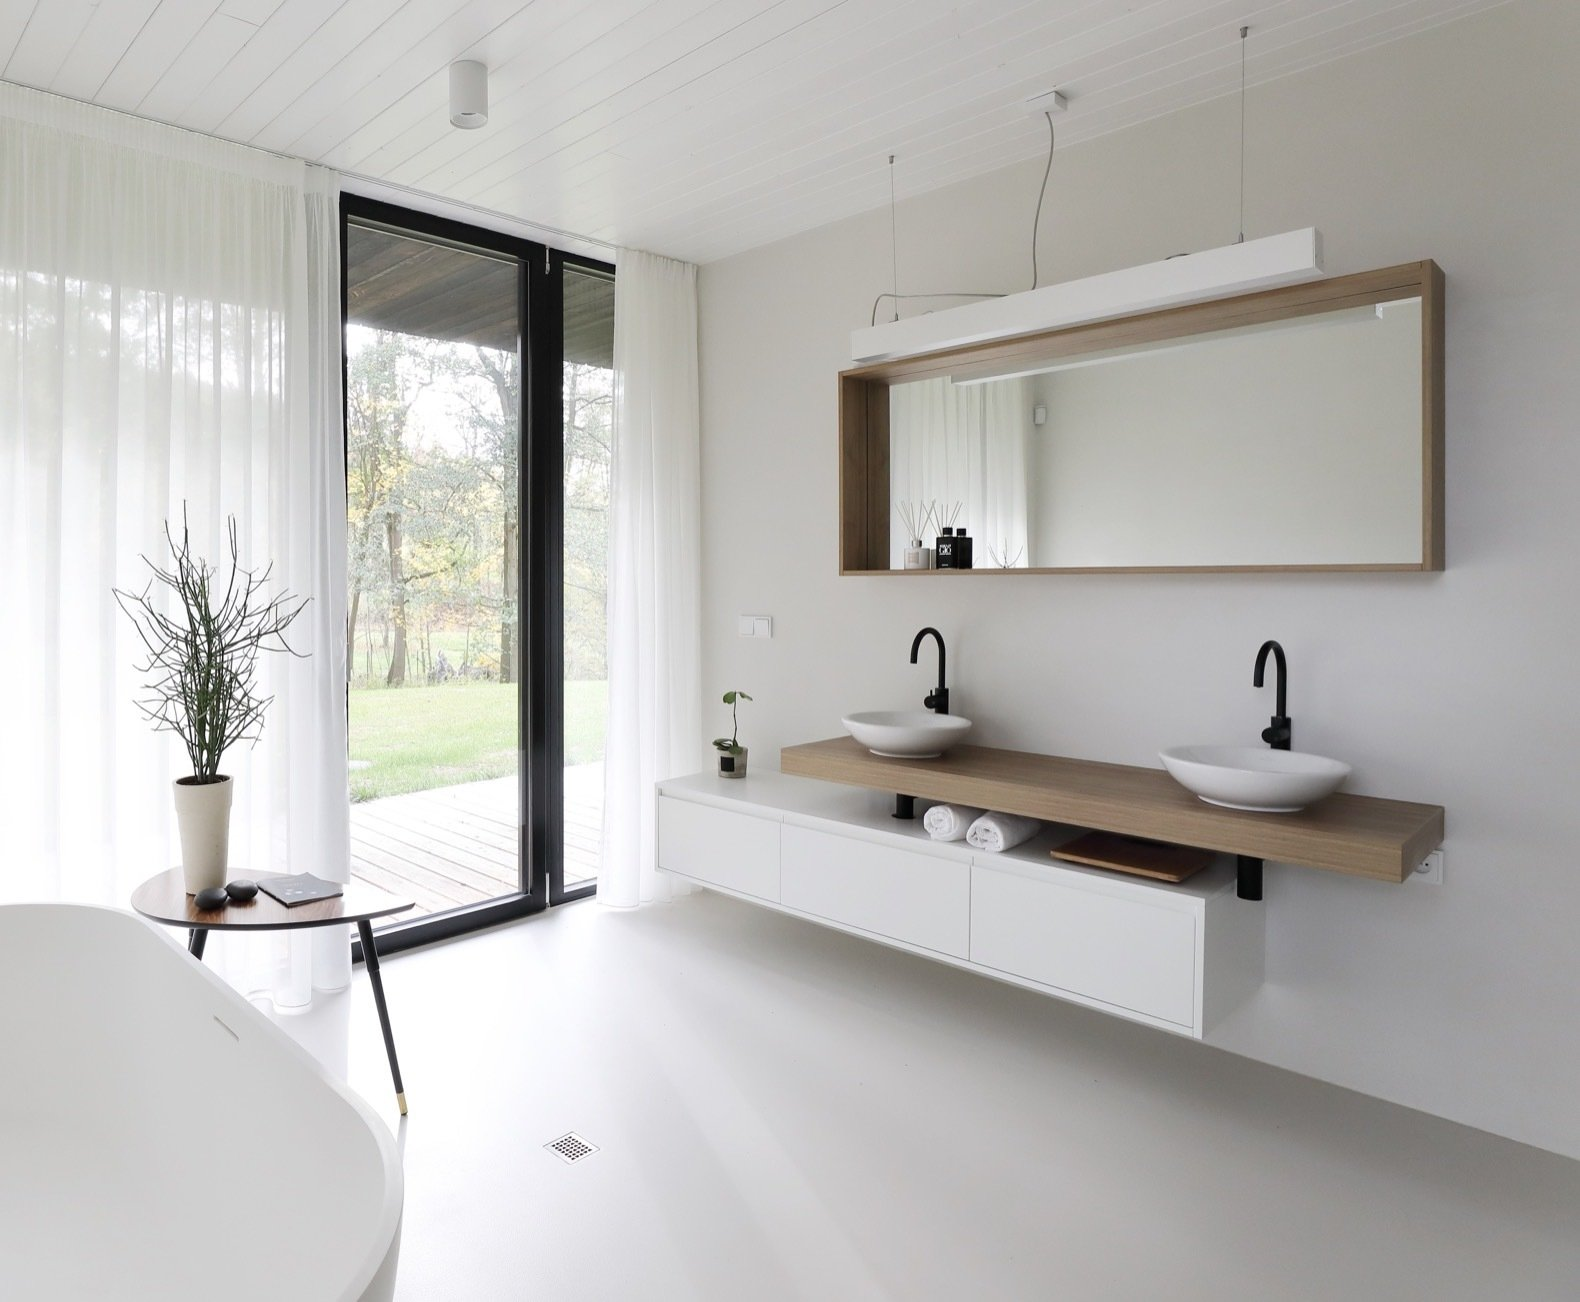 Bath, Concrete, Vessel, Wood, Freestanding, Pendant, and Ceiling Even the bathroom offers access to the outdoors.   Bath Wood Freestanding Concrete Photos from This Minimalist Bungalow Will Change Color Over Time